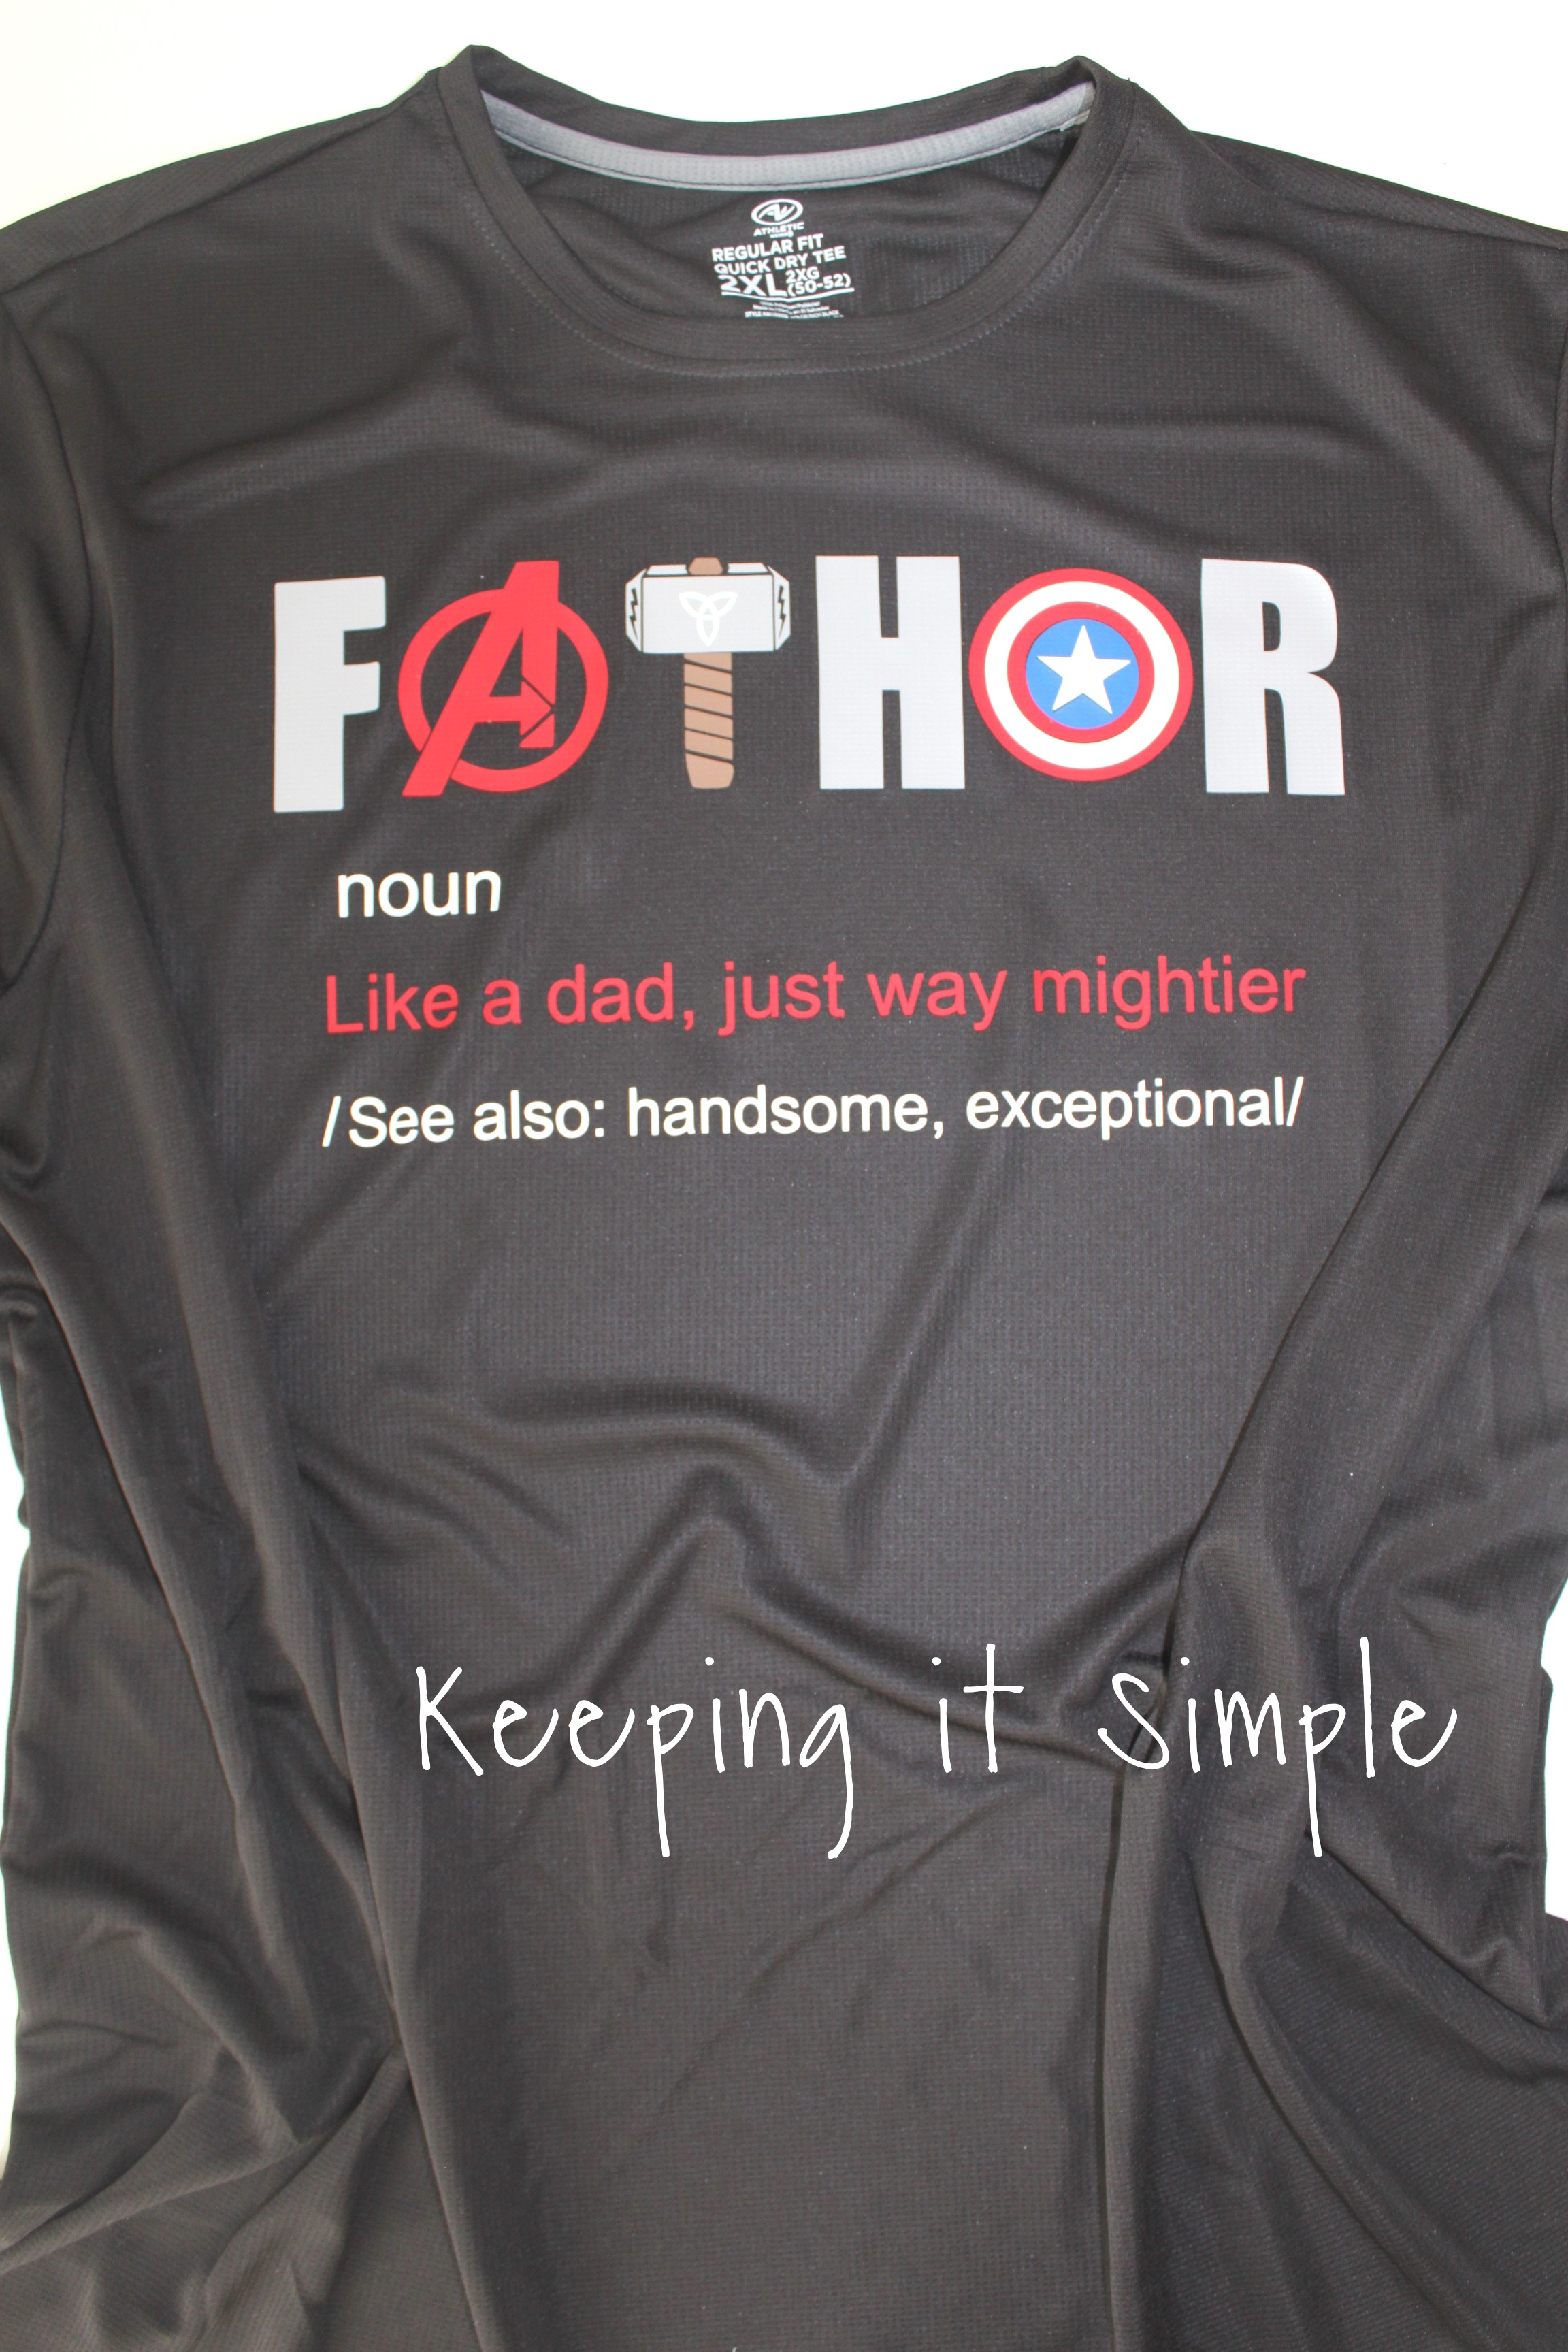 avengers-shirt-fathor (1)2 • Keeping it Simple